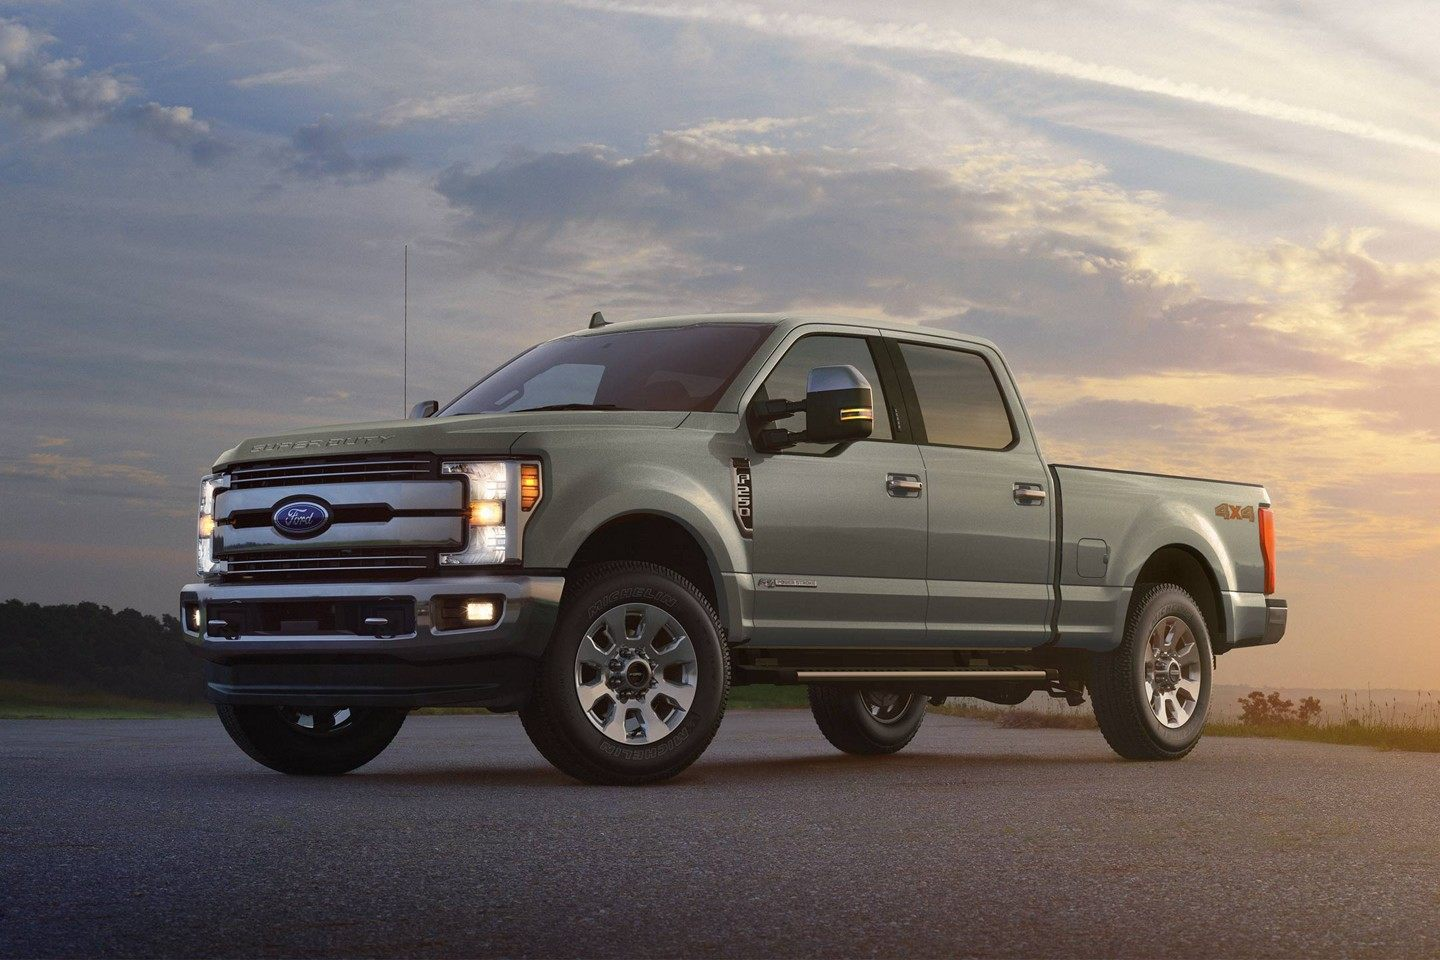 2019 Ford F-250 Elkhart, IN